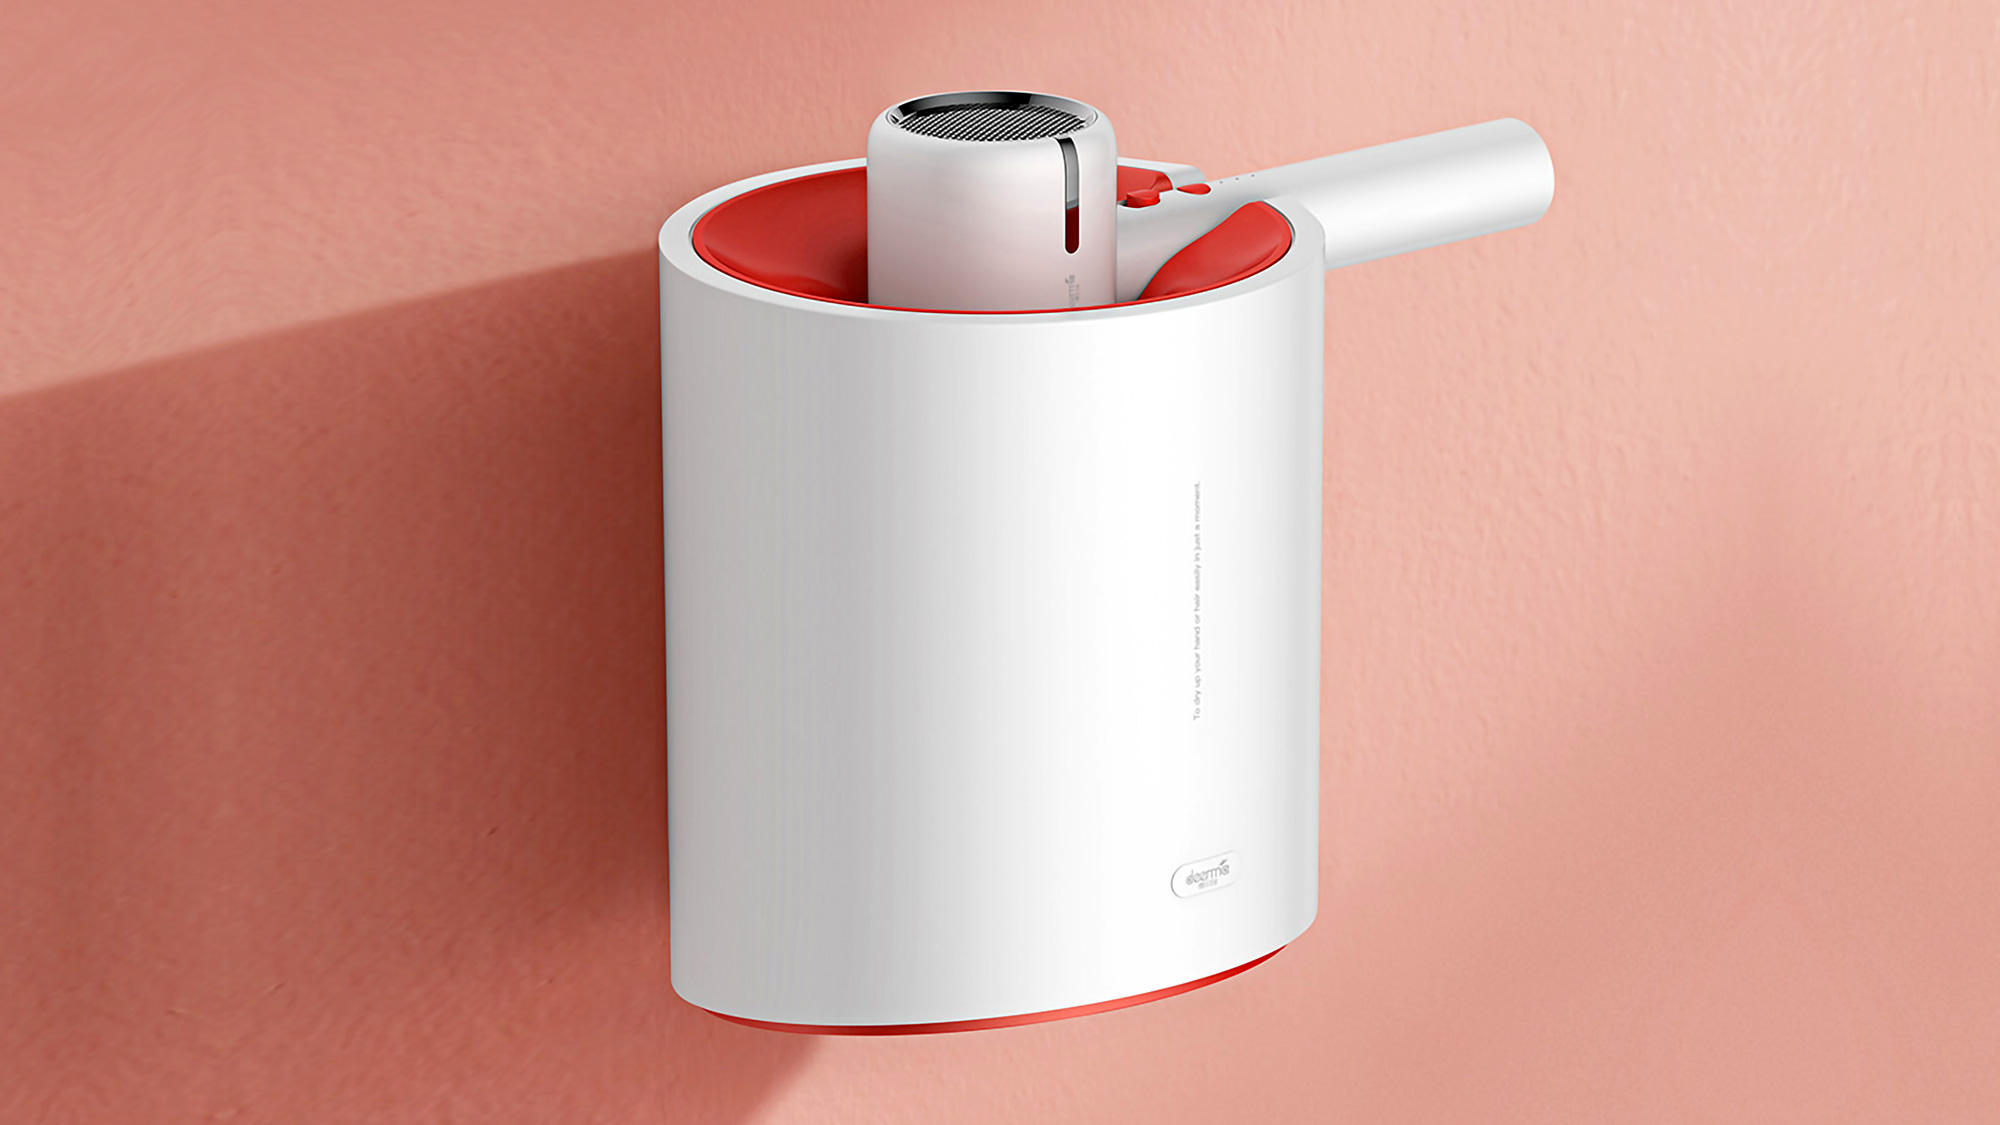 Xiaomi-Deerma-Hand-and-Hairdryer-Hybrid-Featured-image-copy.jpg